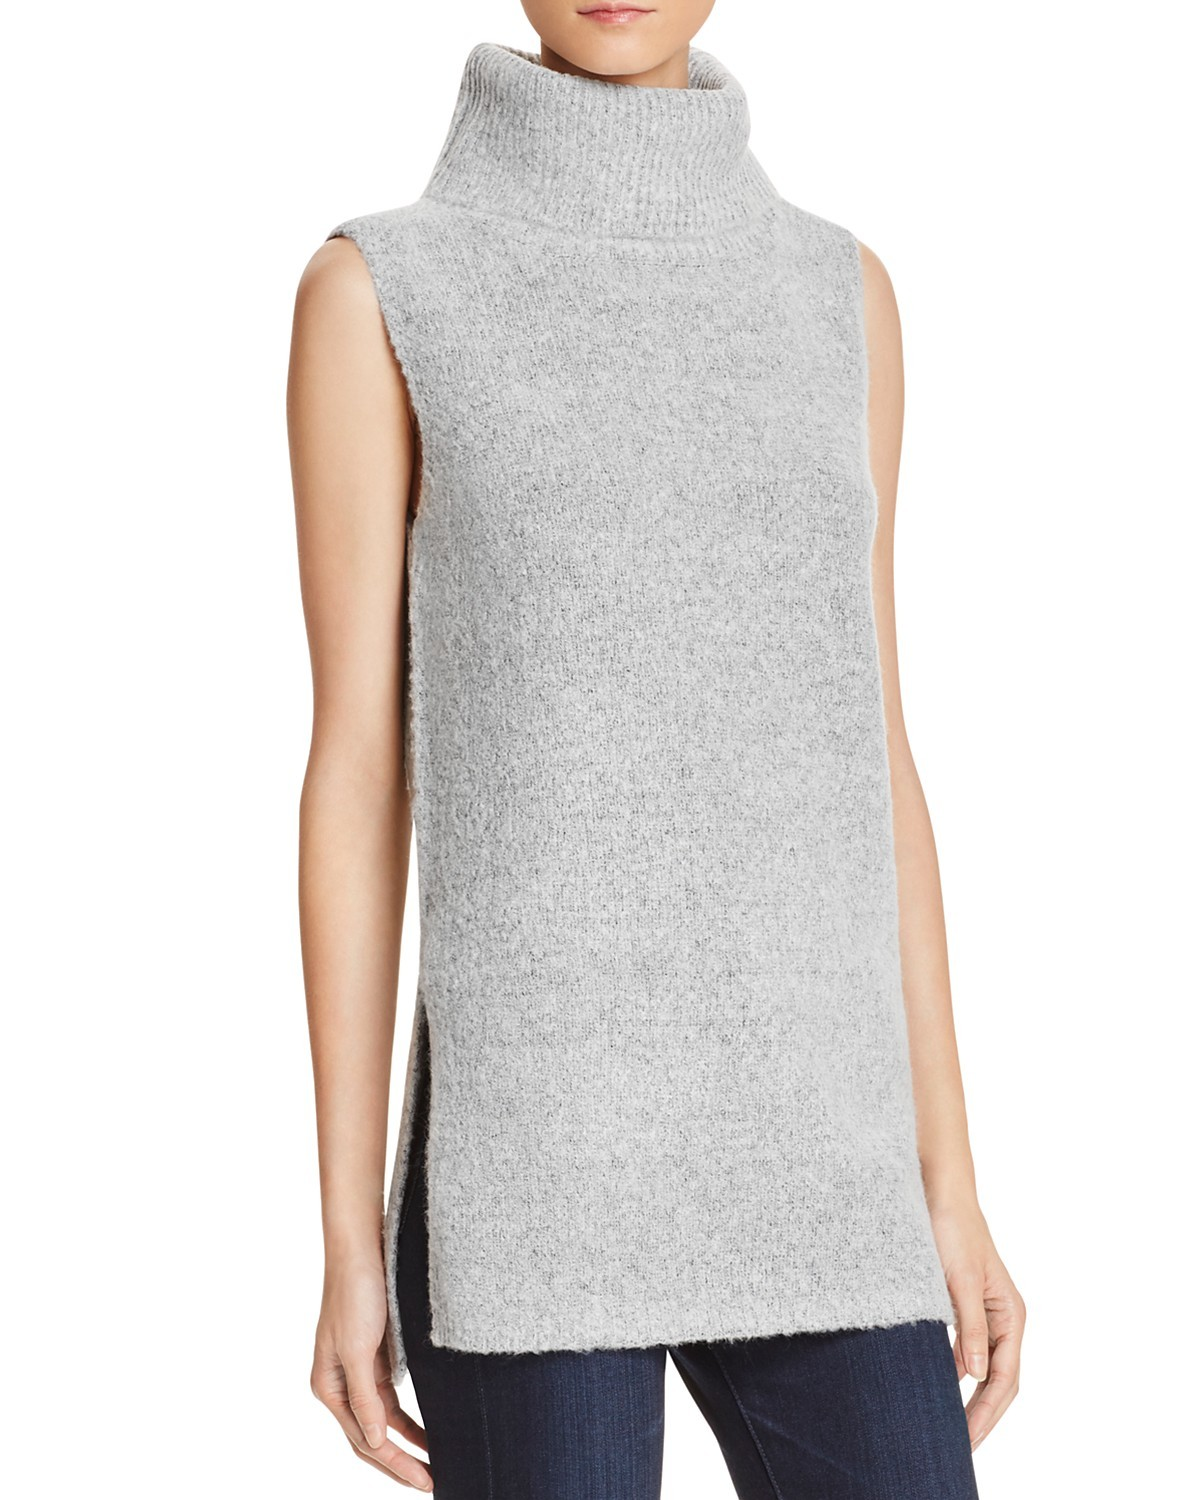 c782f56566fe2 Guess Sleeveless Turtleneck Sweater